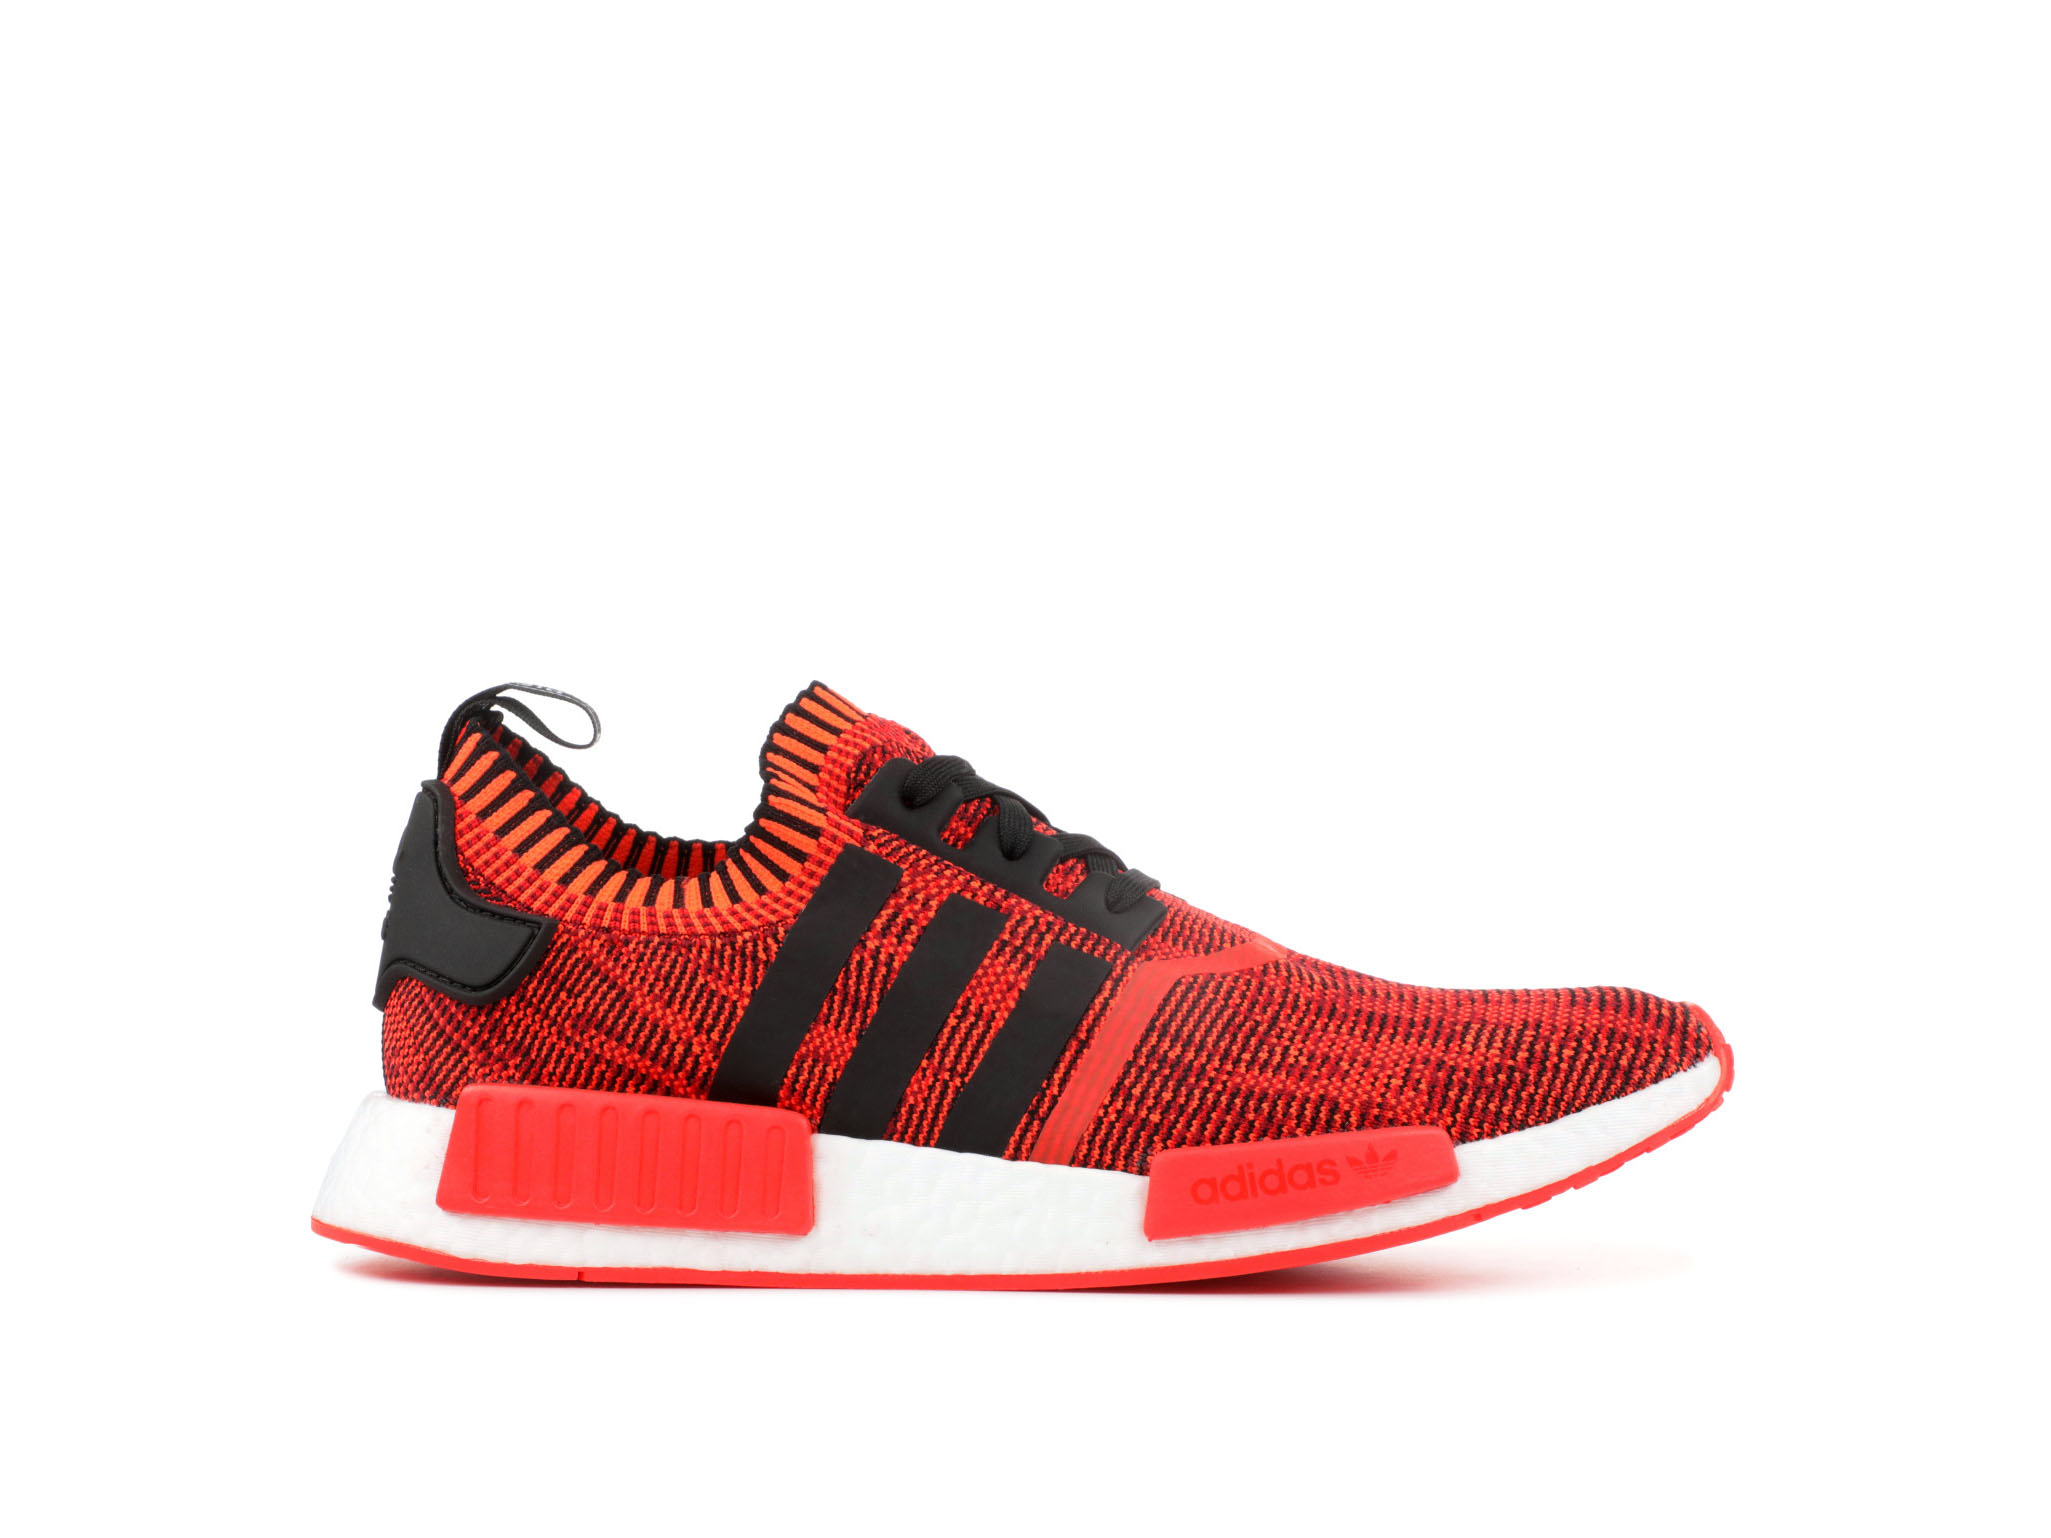 huge selection of a15e4 7f497 Red Apple 2.0 'Al Camo Pack' NMD R1